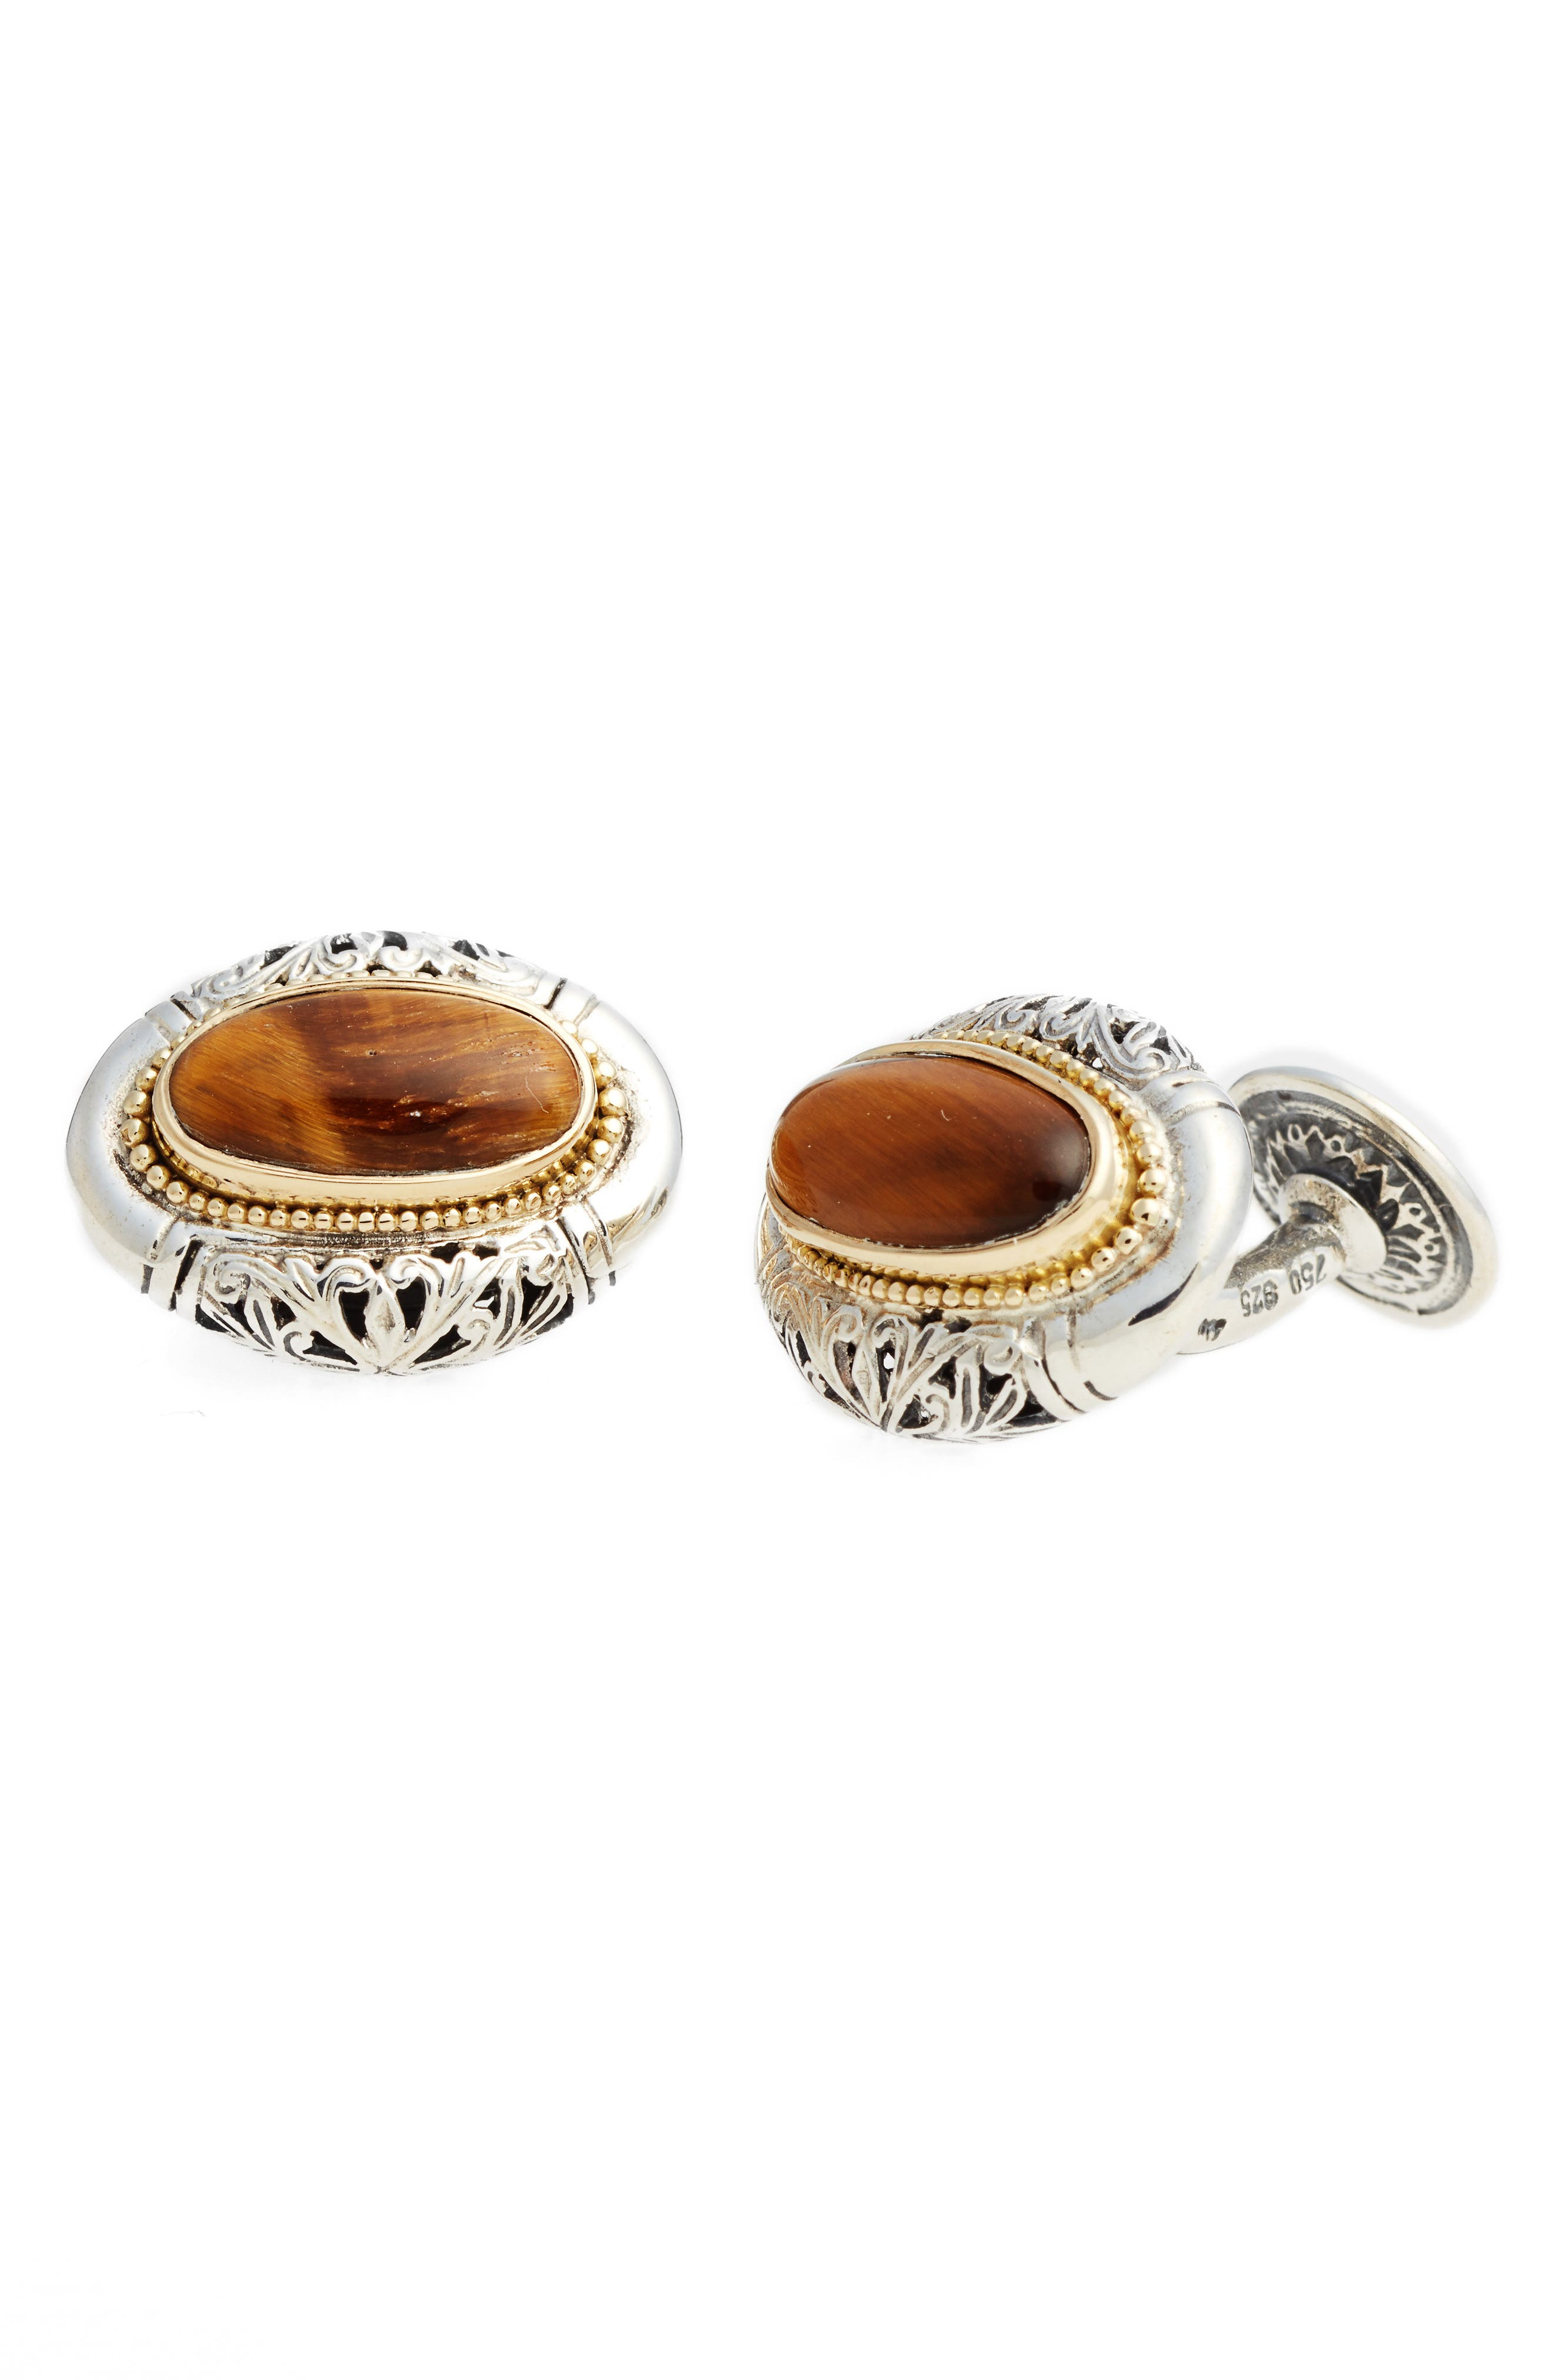 Color Classics Oval Cuff Links,                         Main,                         color, Silver/ Gold/ Tigers Eye